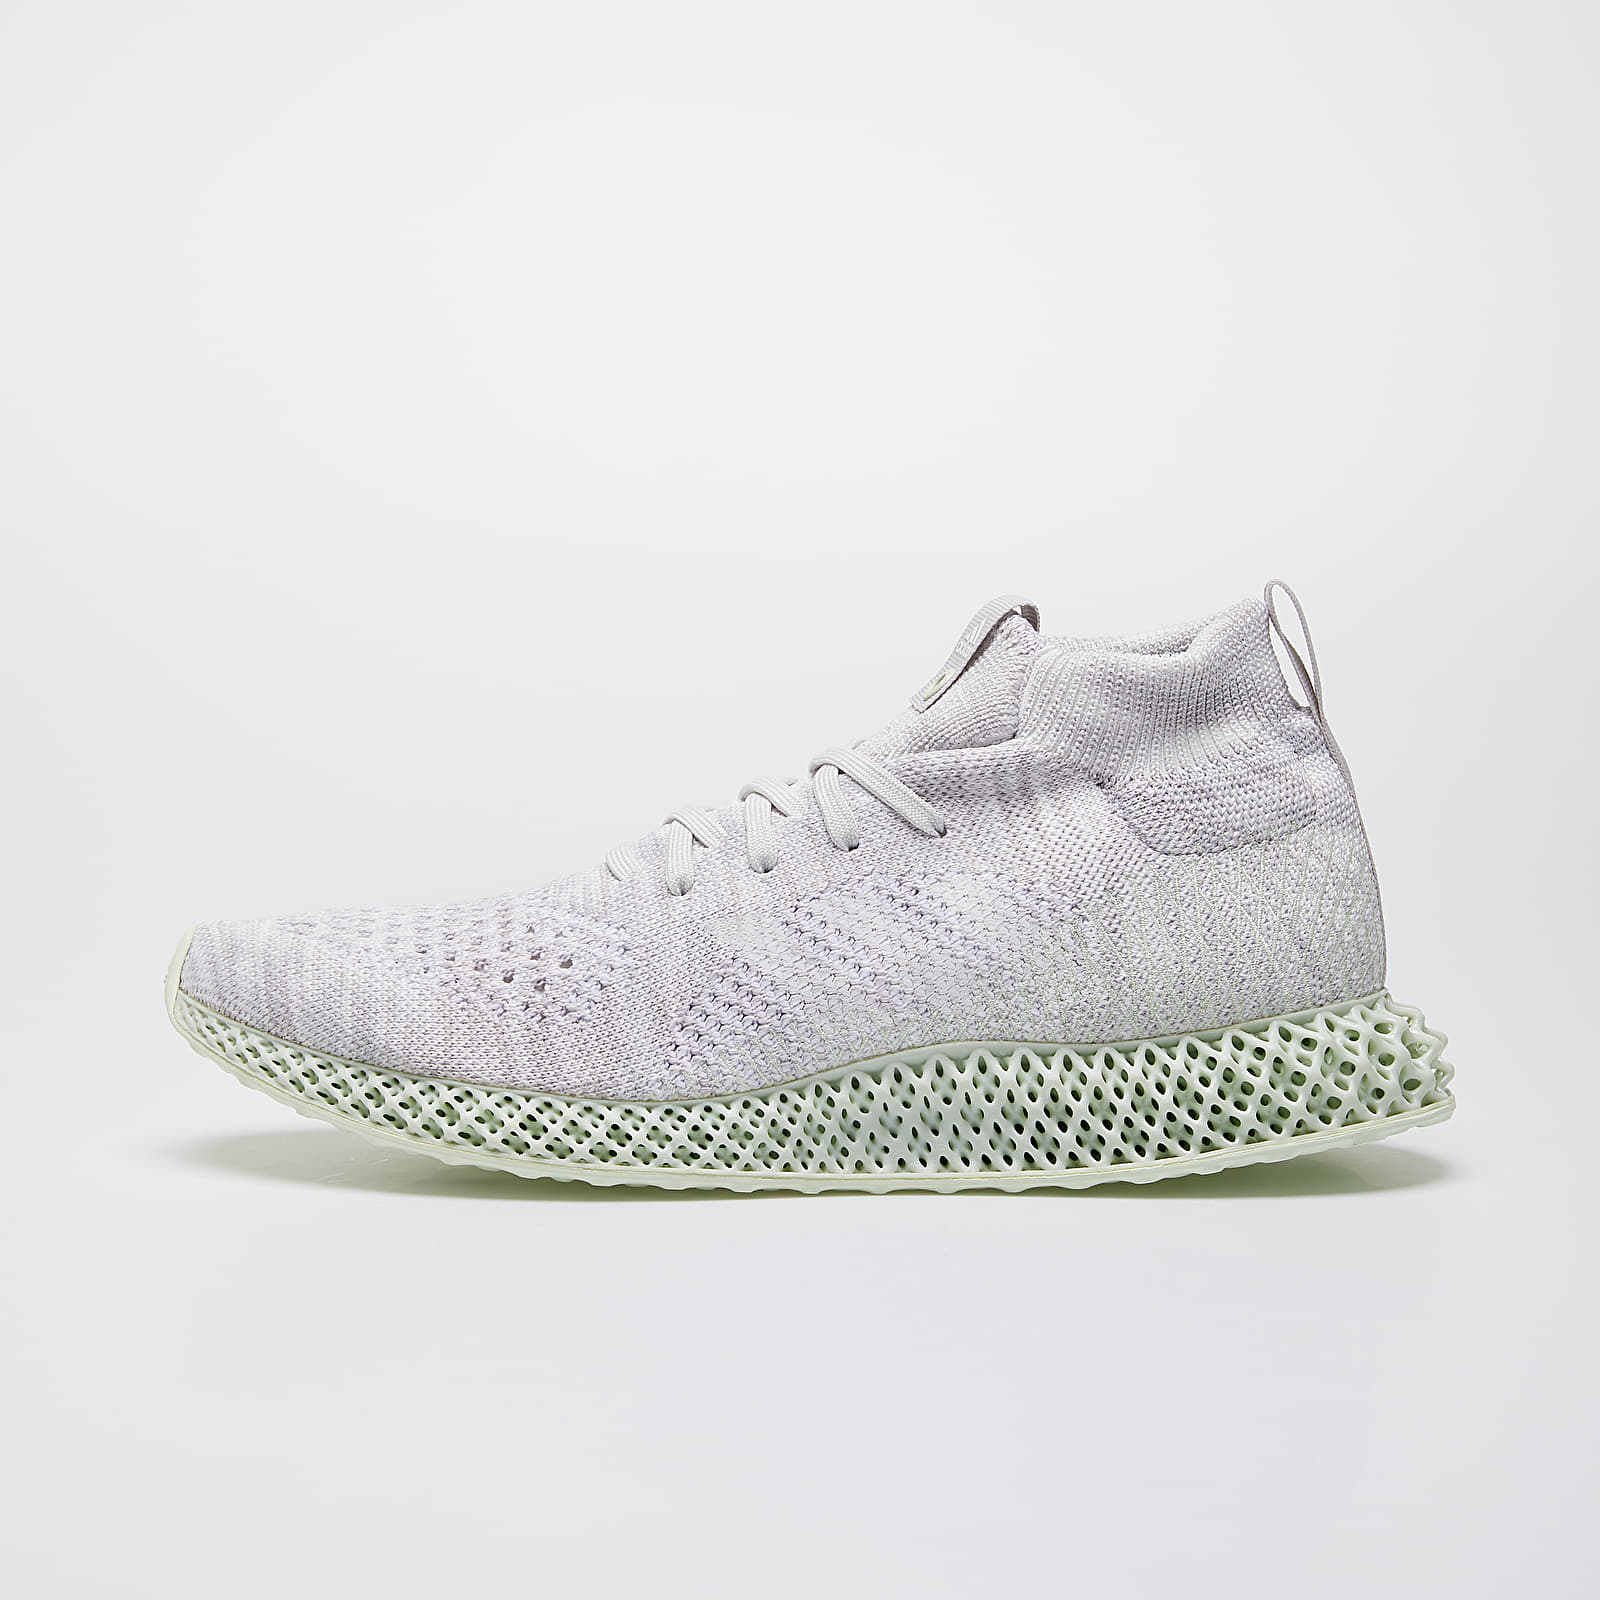 Men's shoes adidas Consortium Runner Mid 4D White/ White/ White